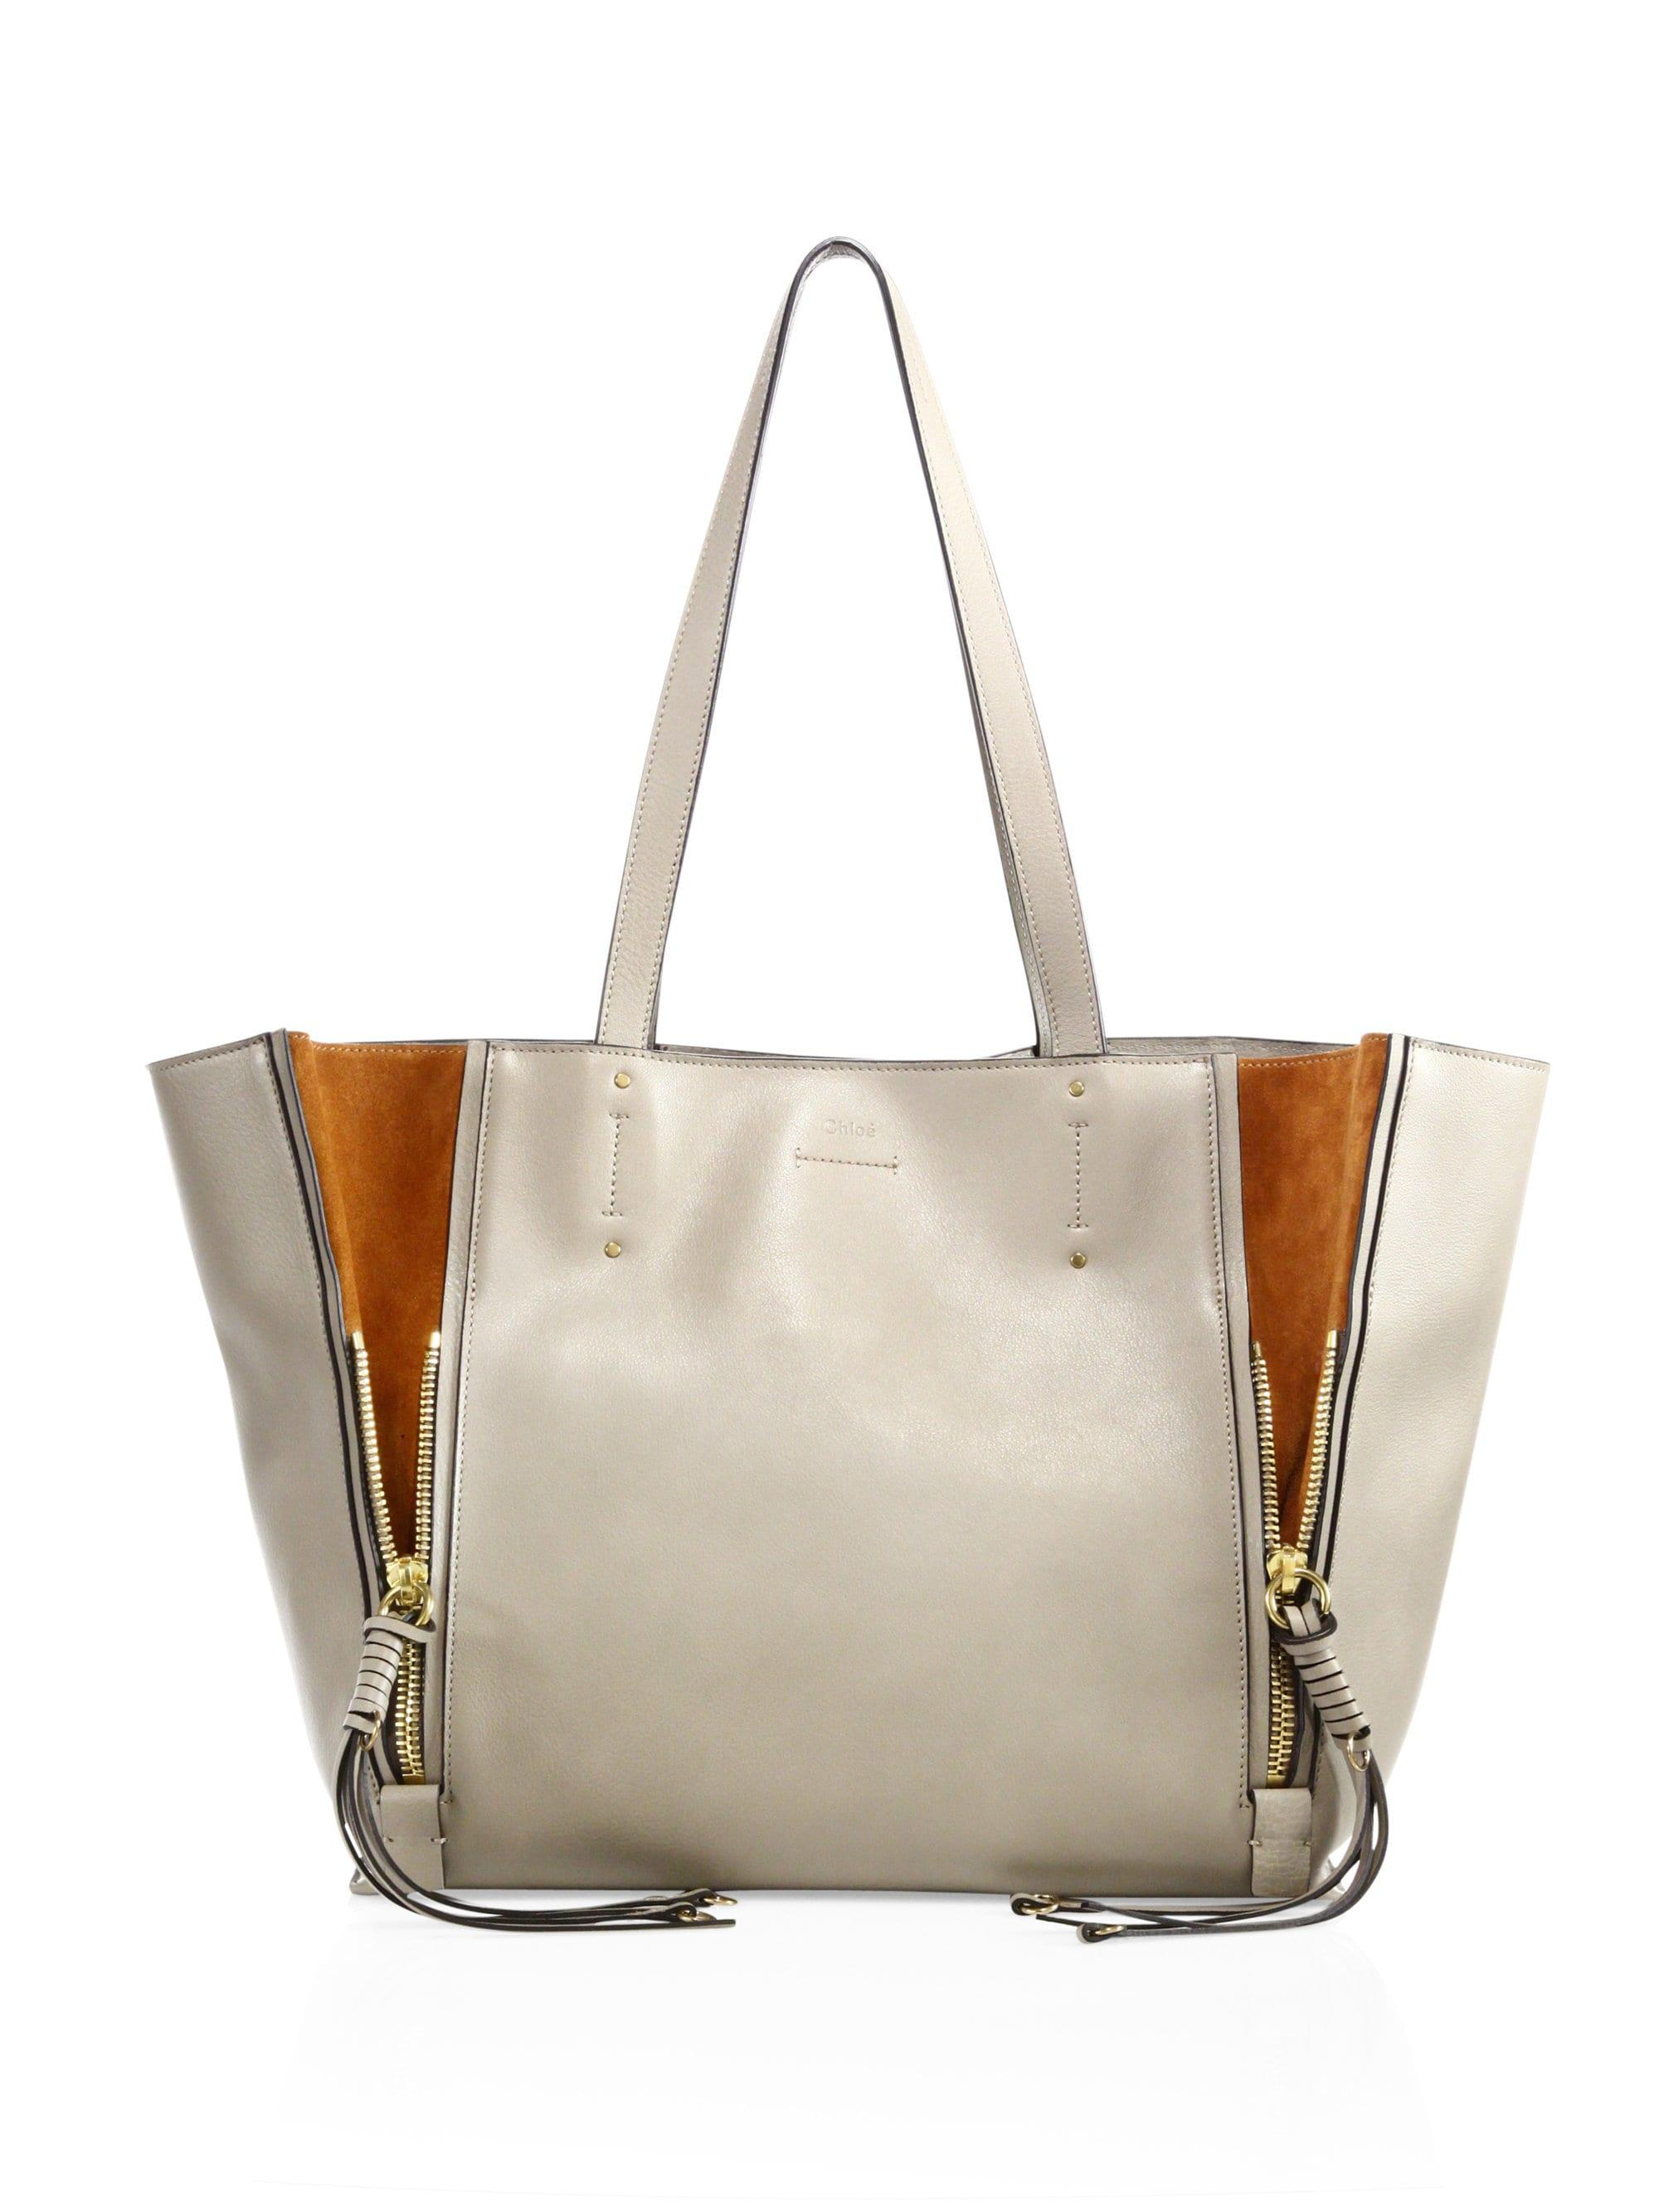 269d363d6 Lyst - Chloé Milo Leather & Suede Tote in Gray